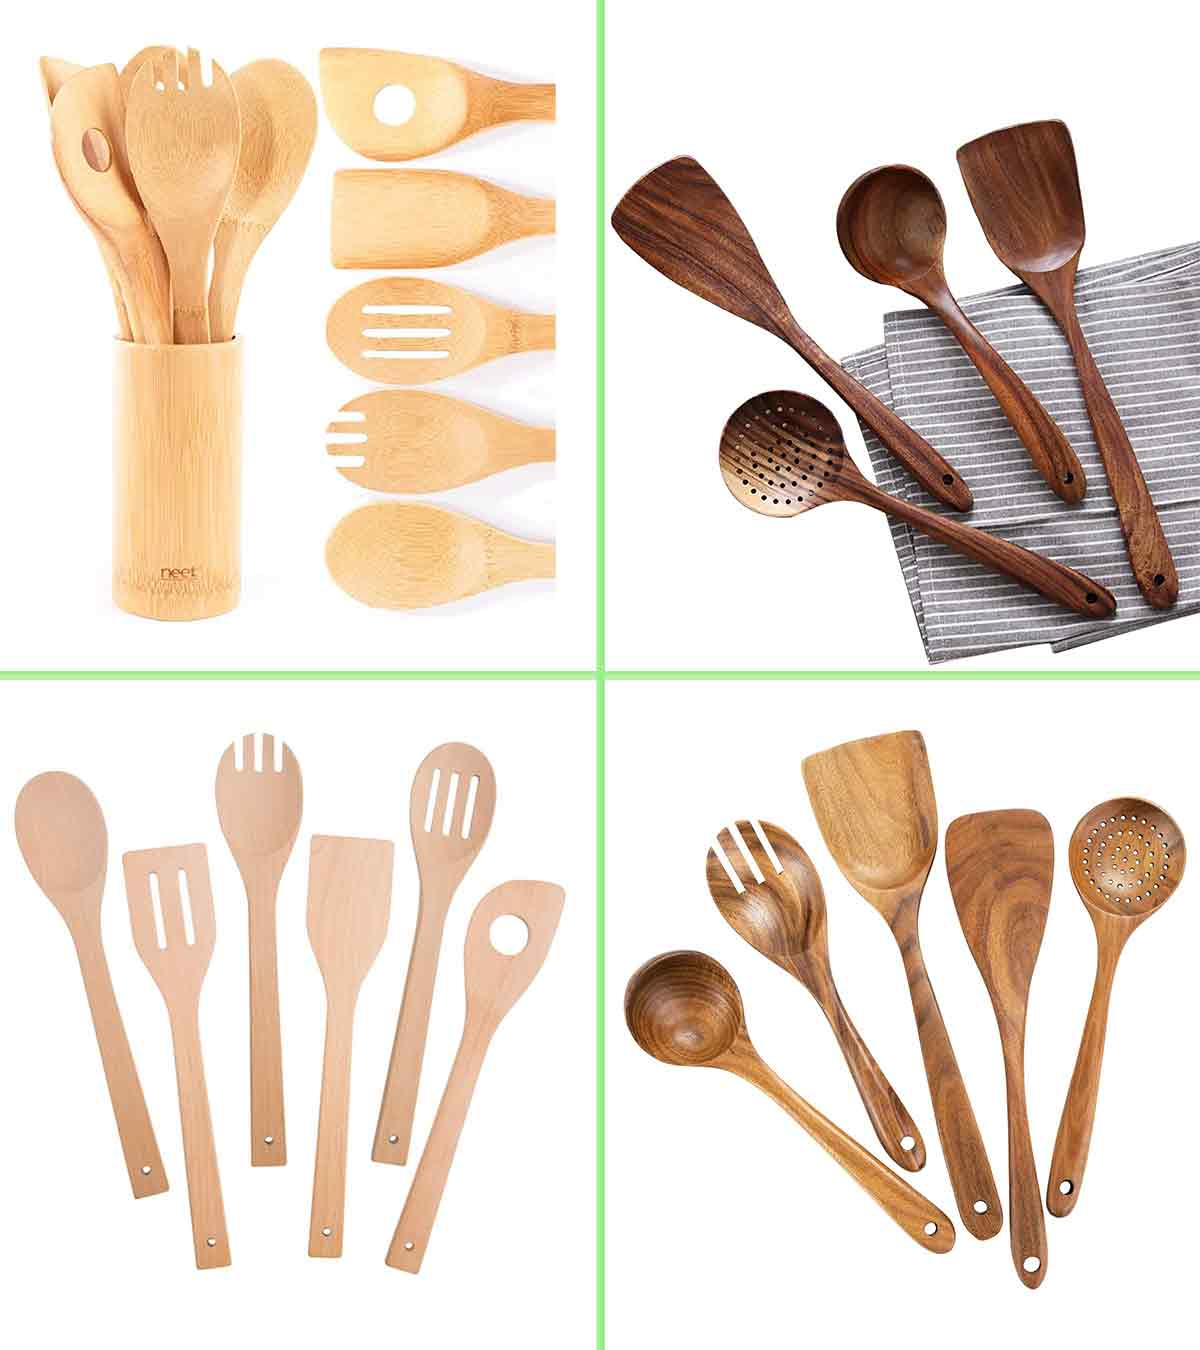 ccHuDE 6 Pcs Mini Wooden Scoops Small Bath Salts Spoon Candy Spoon for Spices Tea Coffee Beans